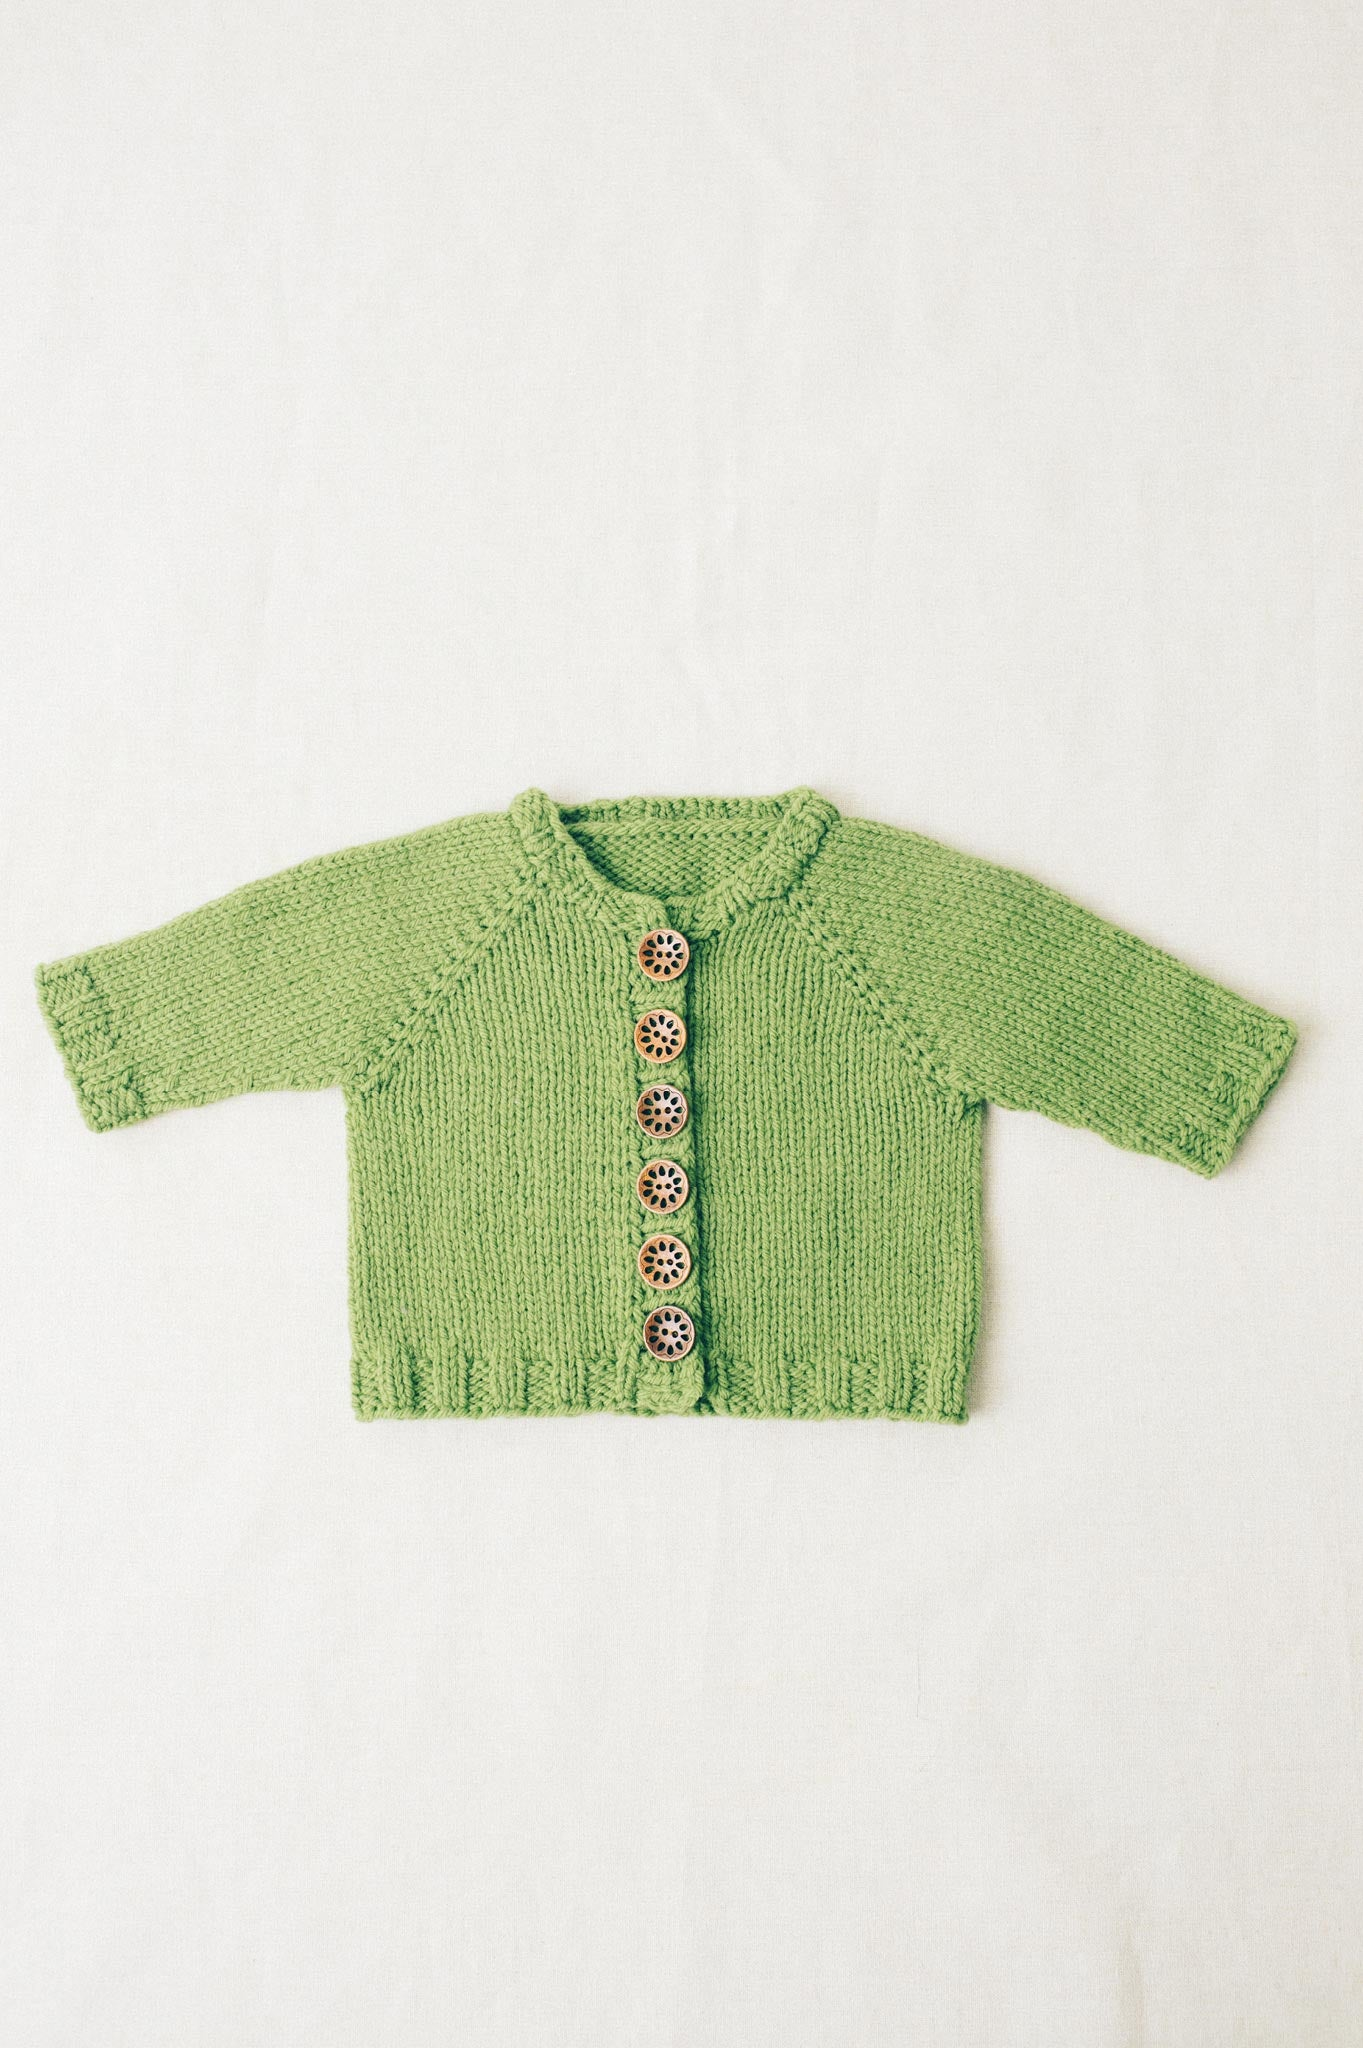 basic baby cardigan knitting pattern - Quince and Co